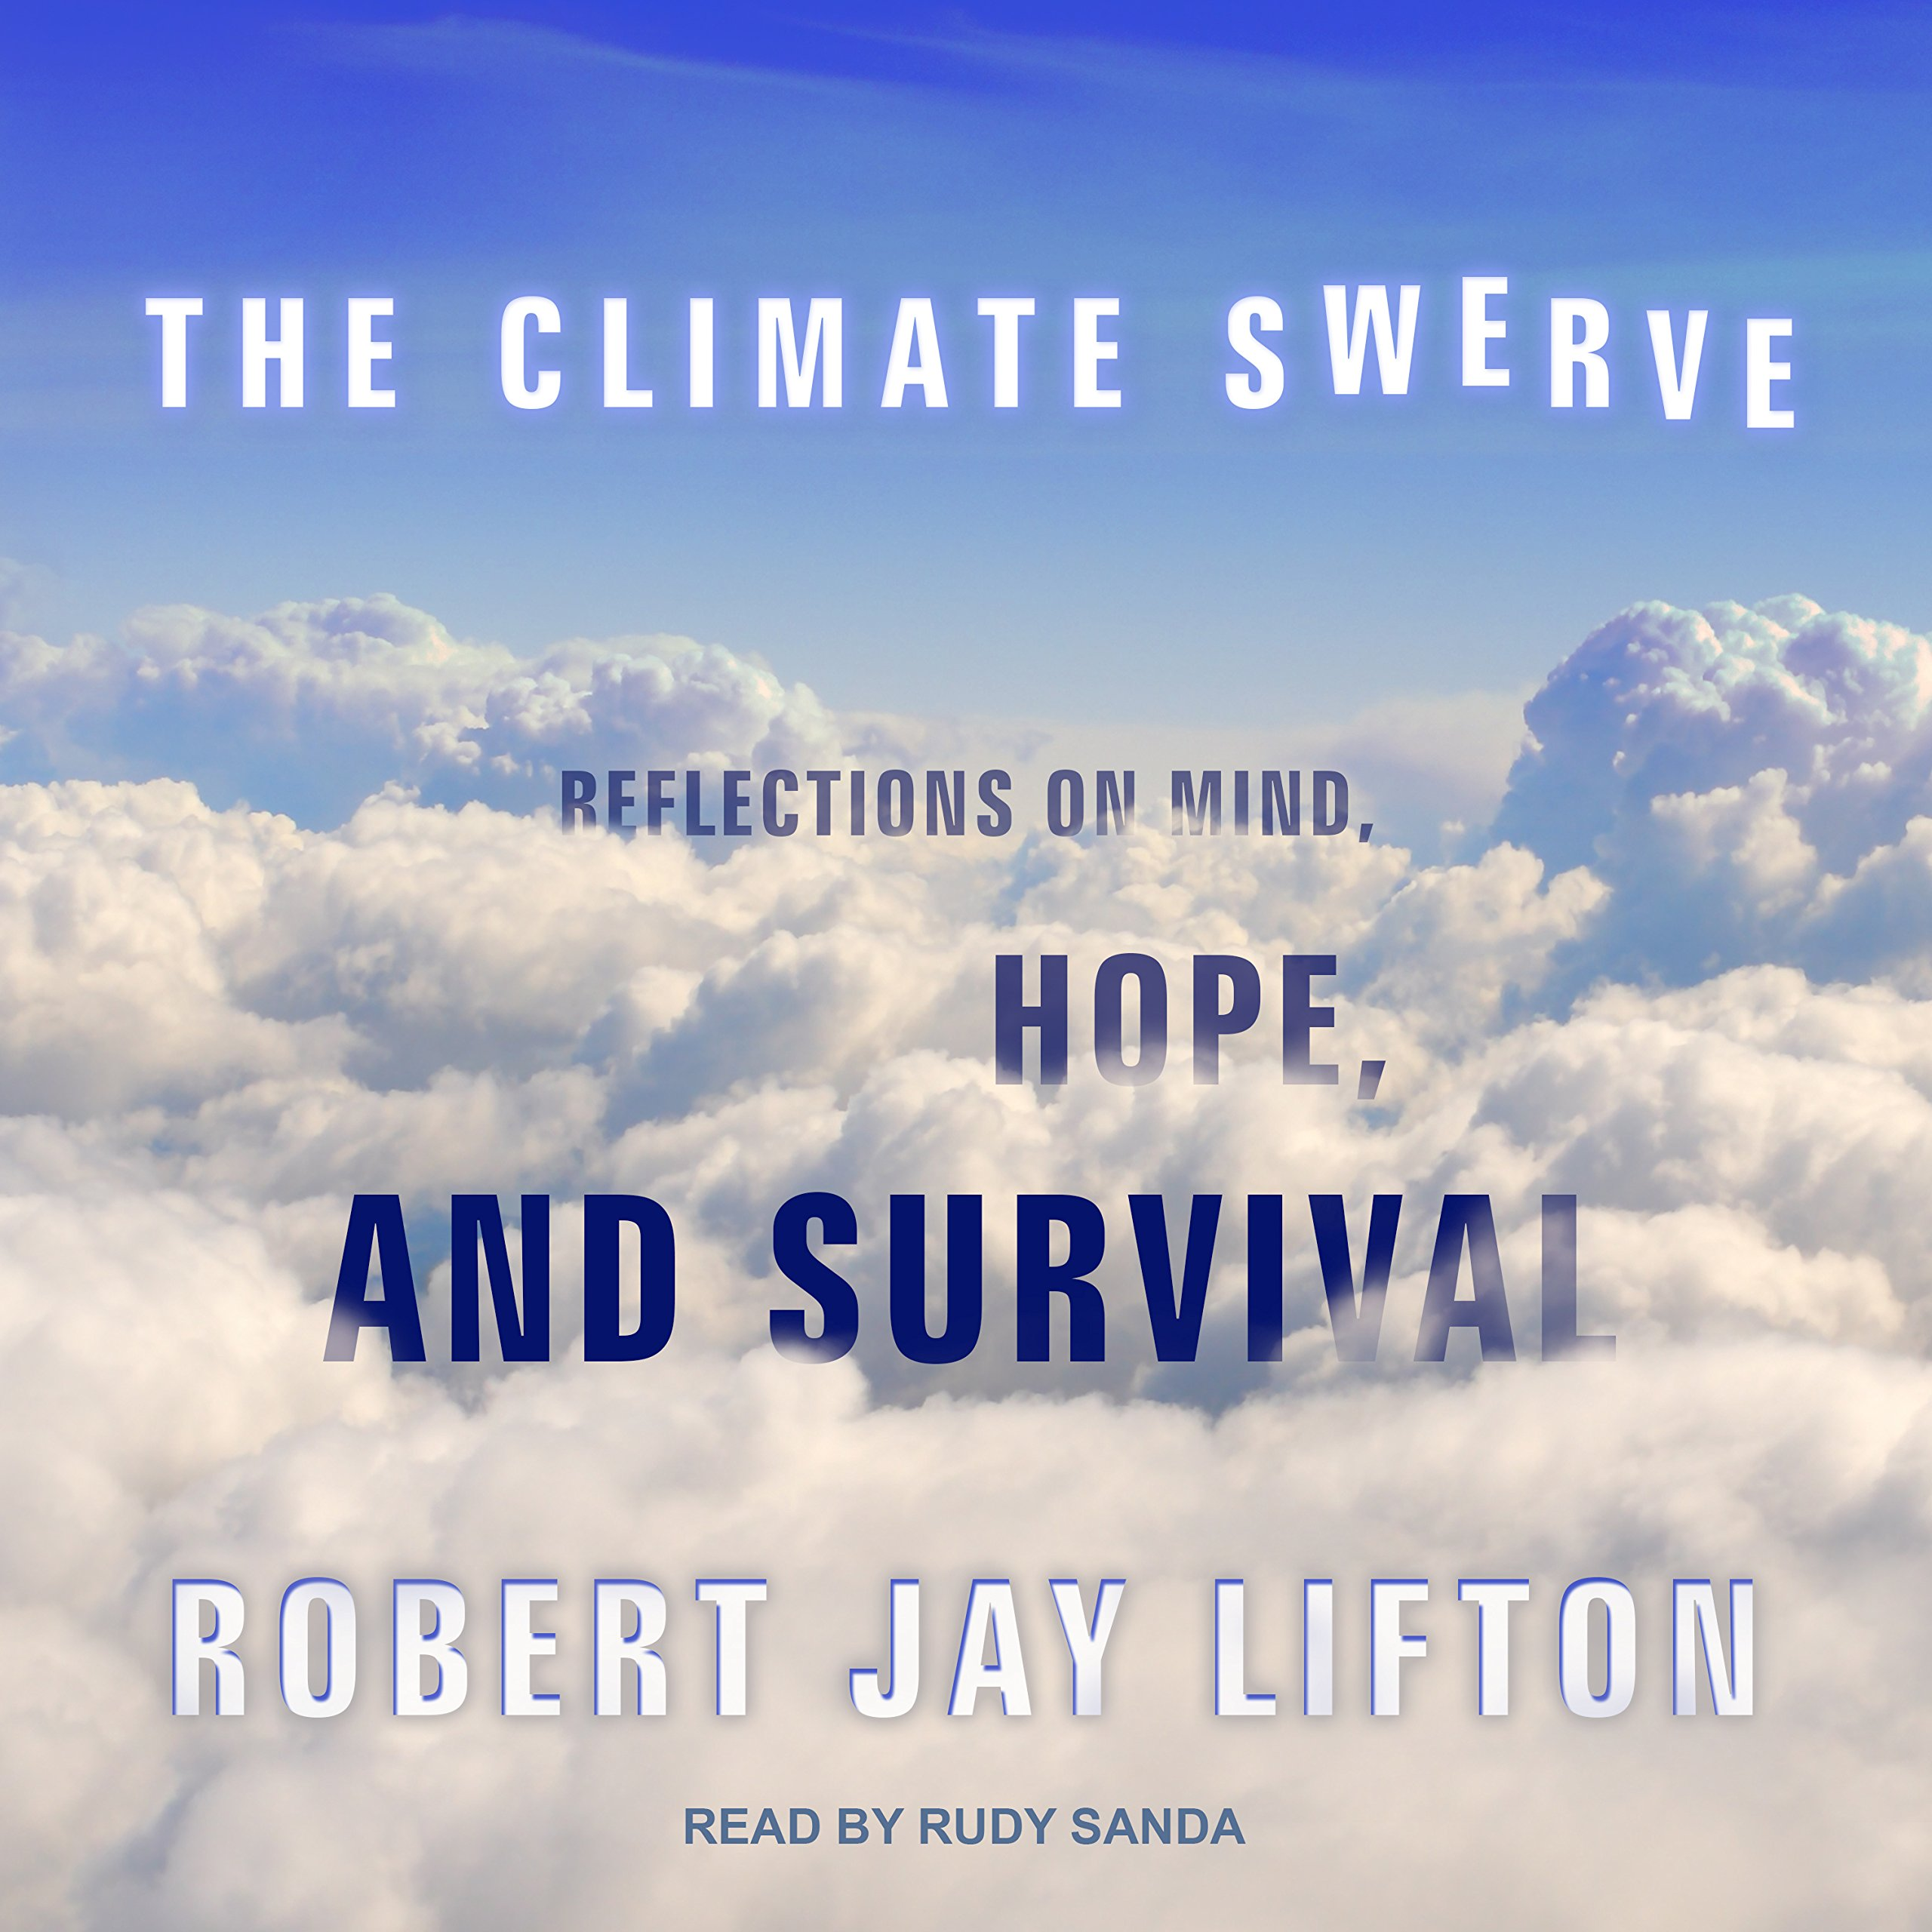 The Climate Swerve: Reflections on Mind, Hope, and Survival PDF